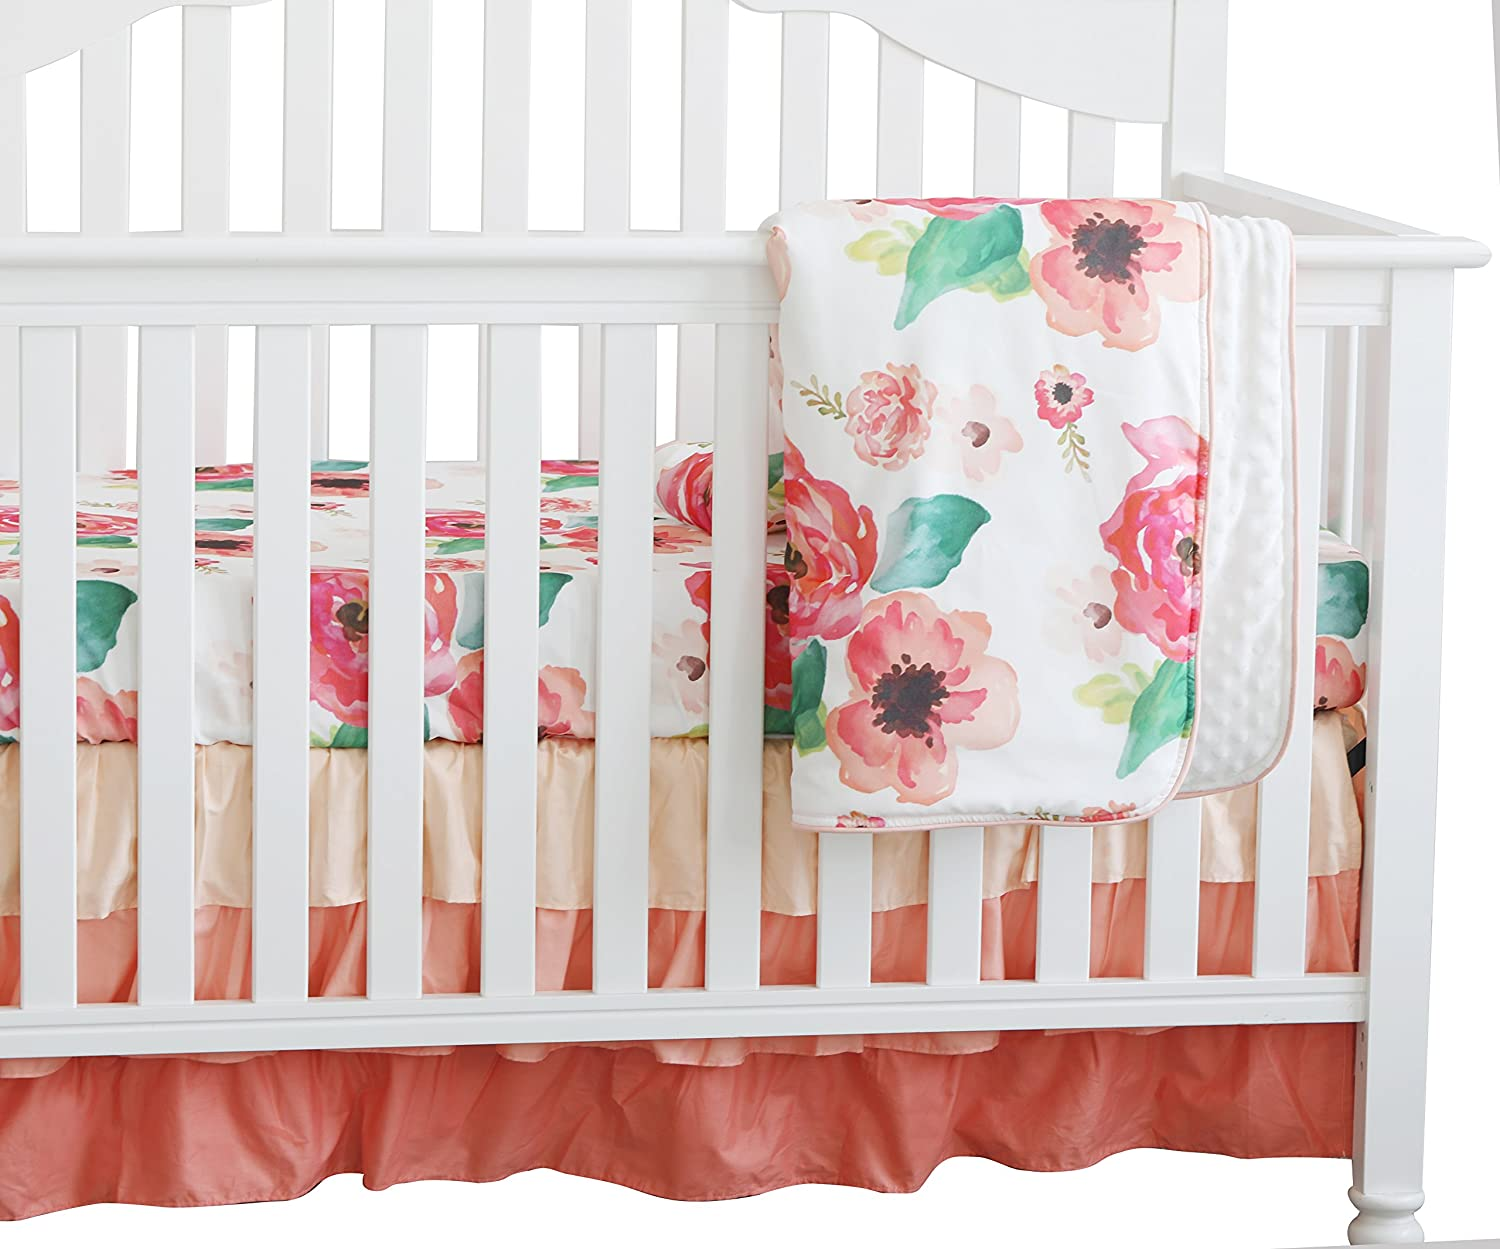 Peach Floral Nursery Crib Skirt Set Baby Girl Crib Bedding 3 pcs Set Boho Floral Ruffle Baby Minky Blanket Coral